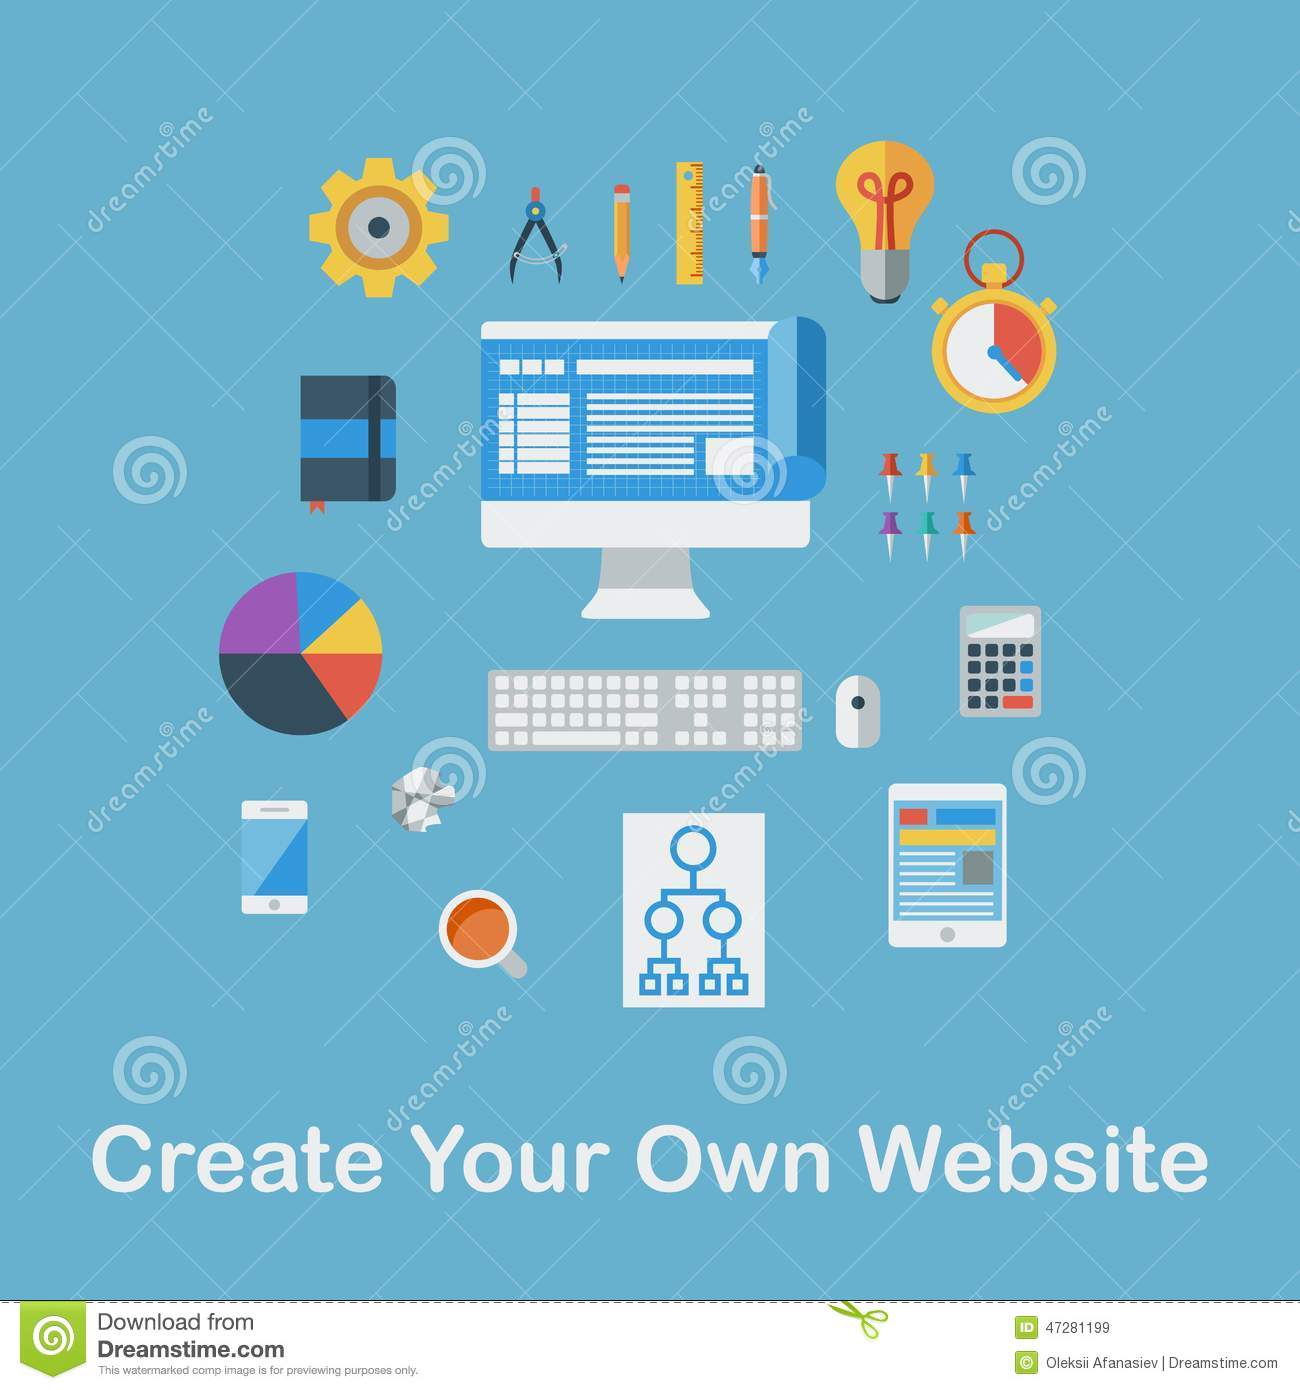 Make own website driverlayer search engine Start my own website